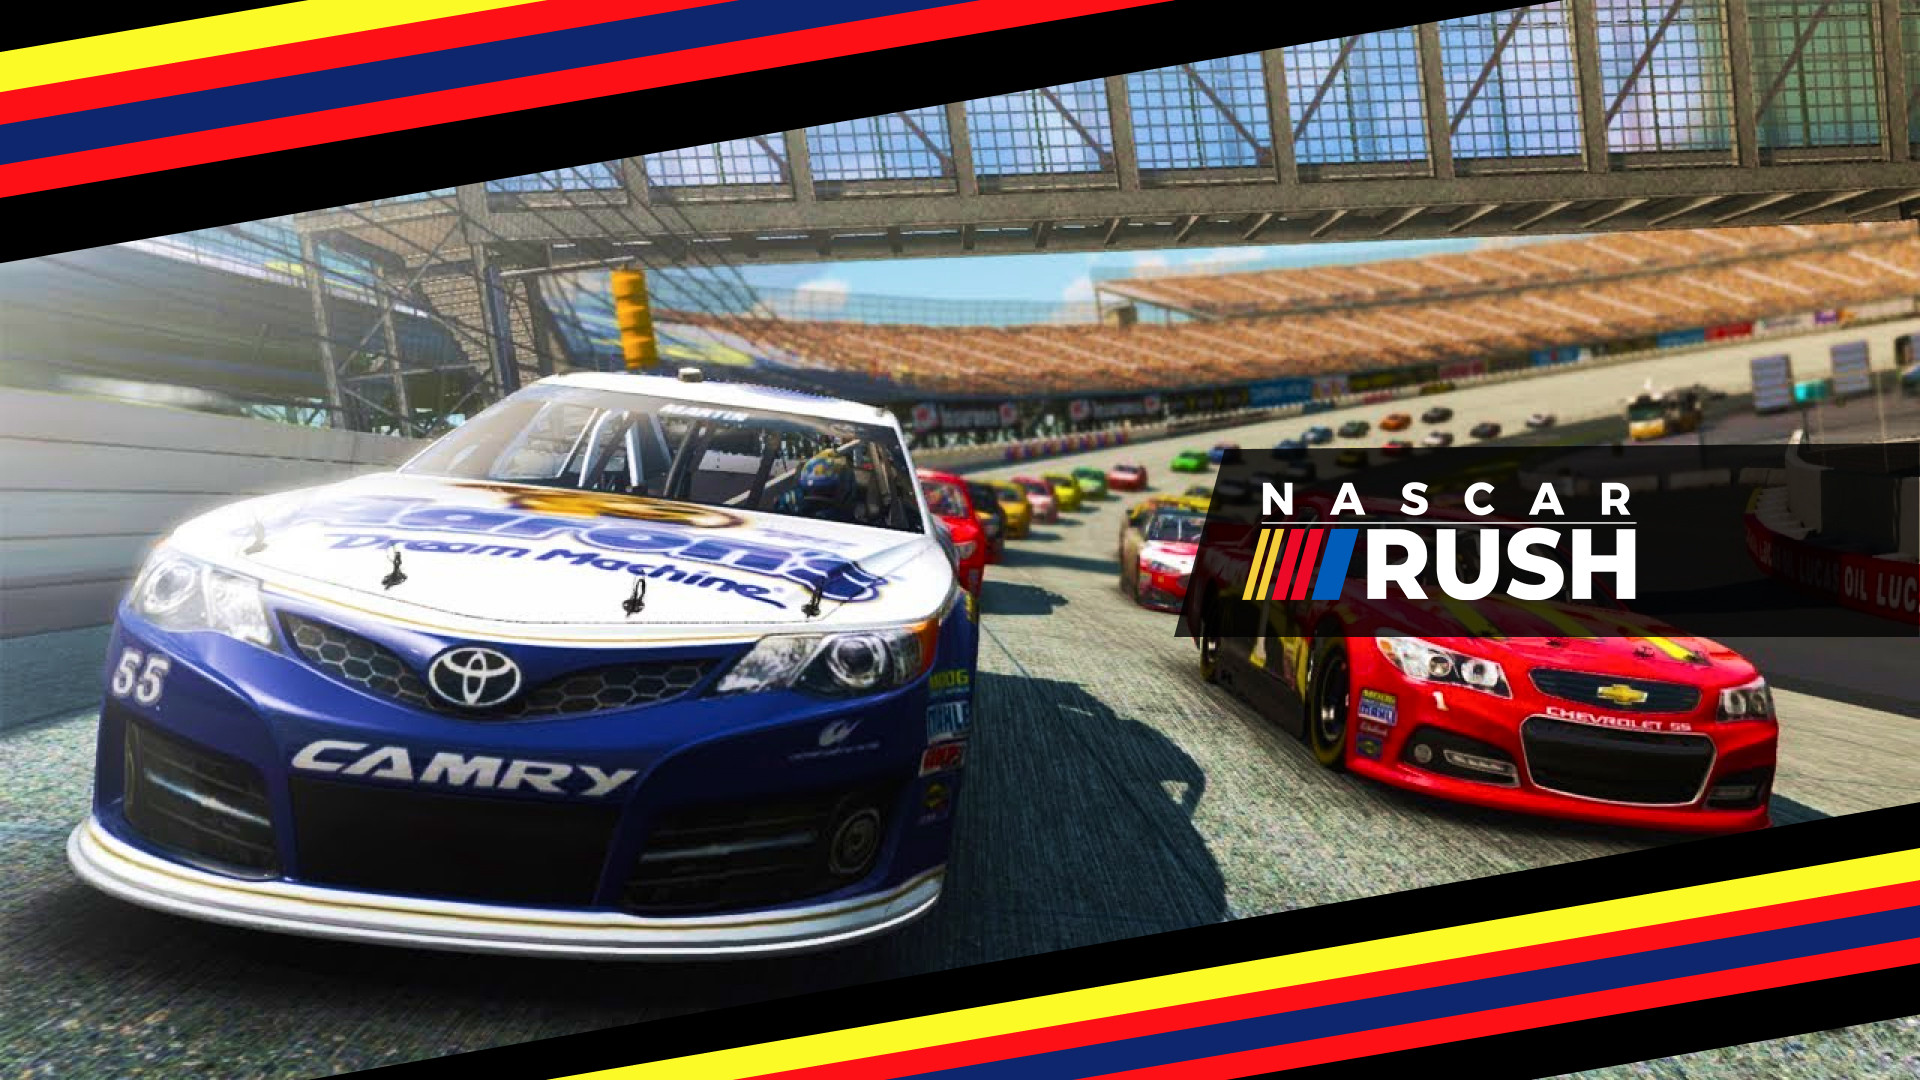 nascar rush, racing video game, racing game, xbox racing game, ps4 racing game, mobile racing game